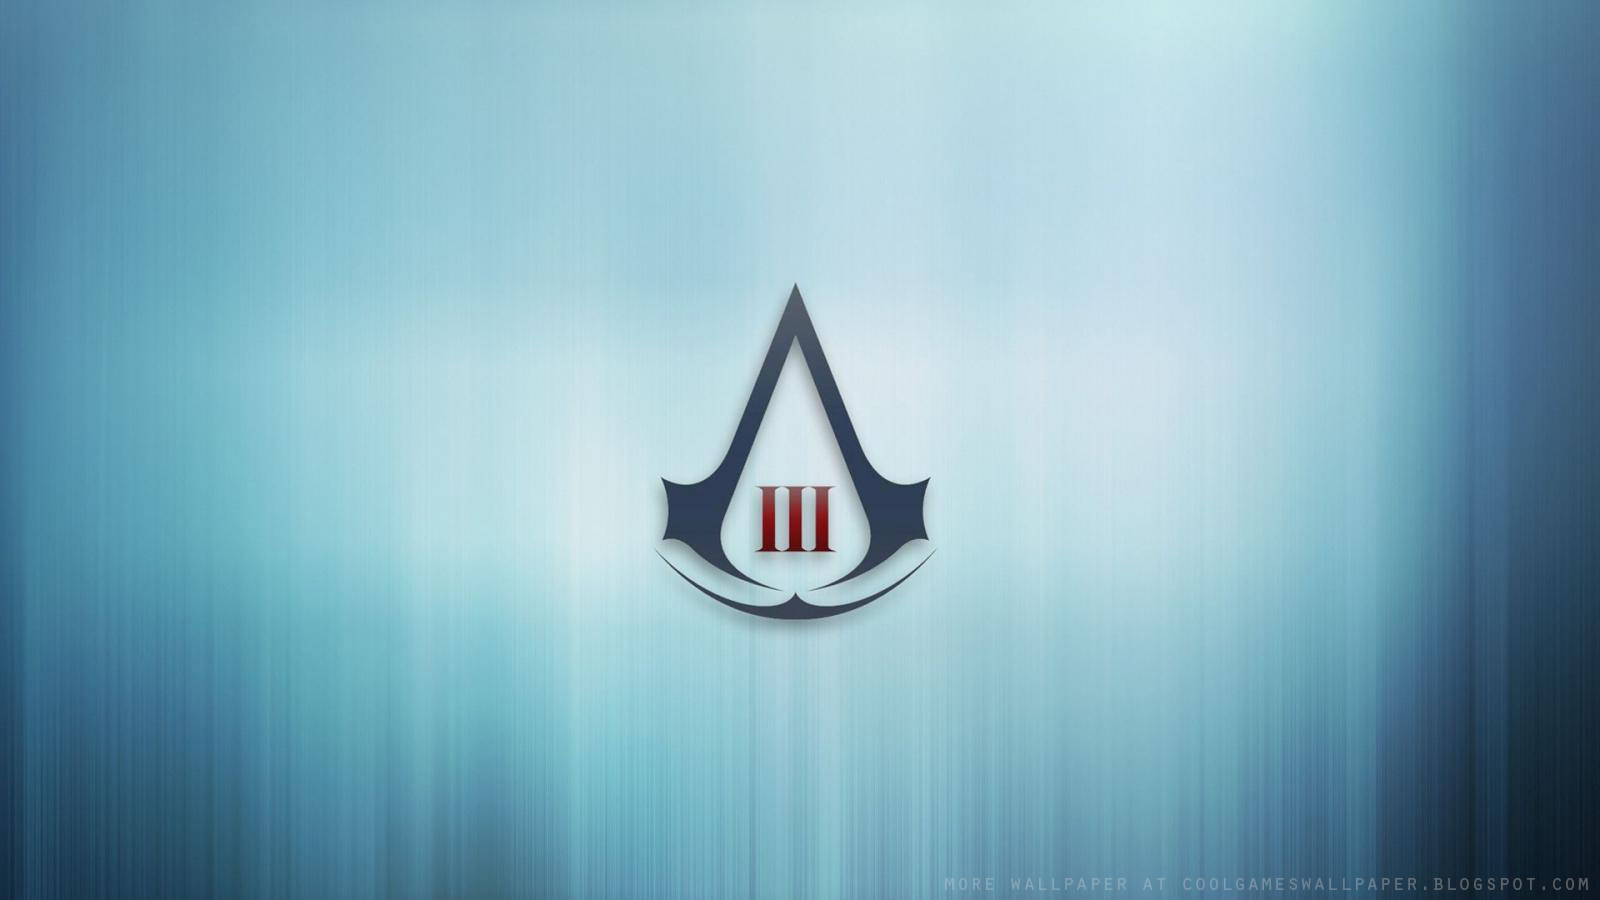 Assassins Creed 3 Logo Wallpaper   Cool Games Wallpaper 1600x900